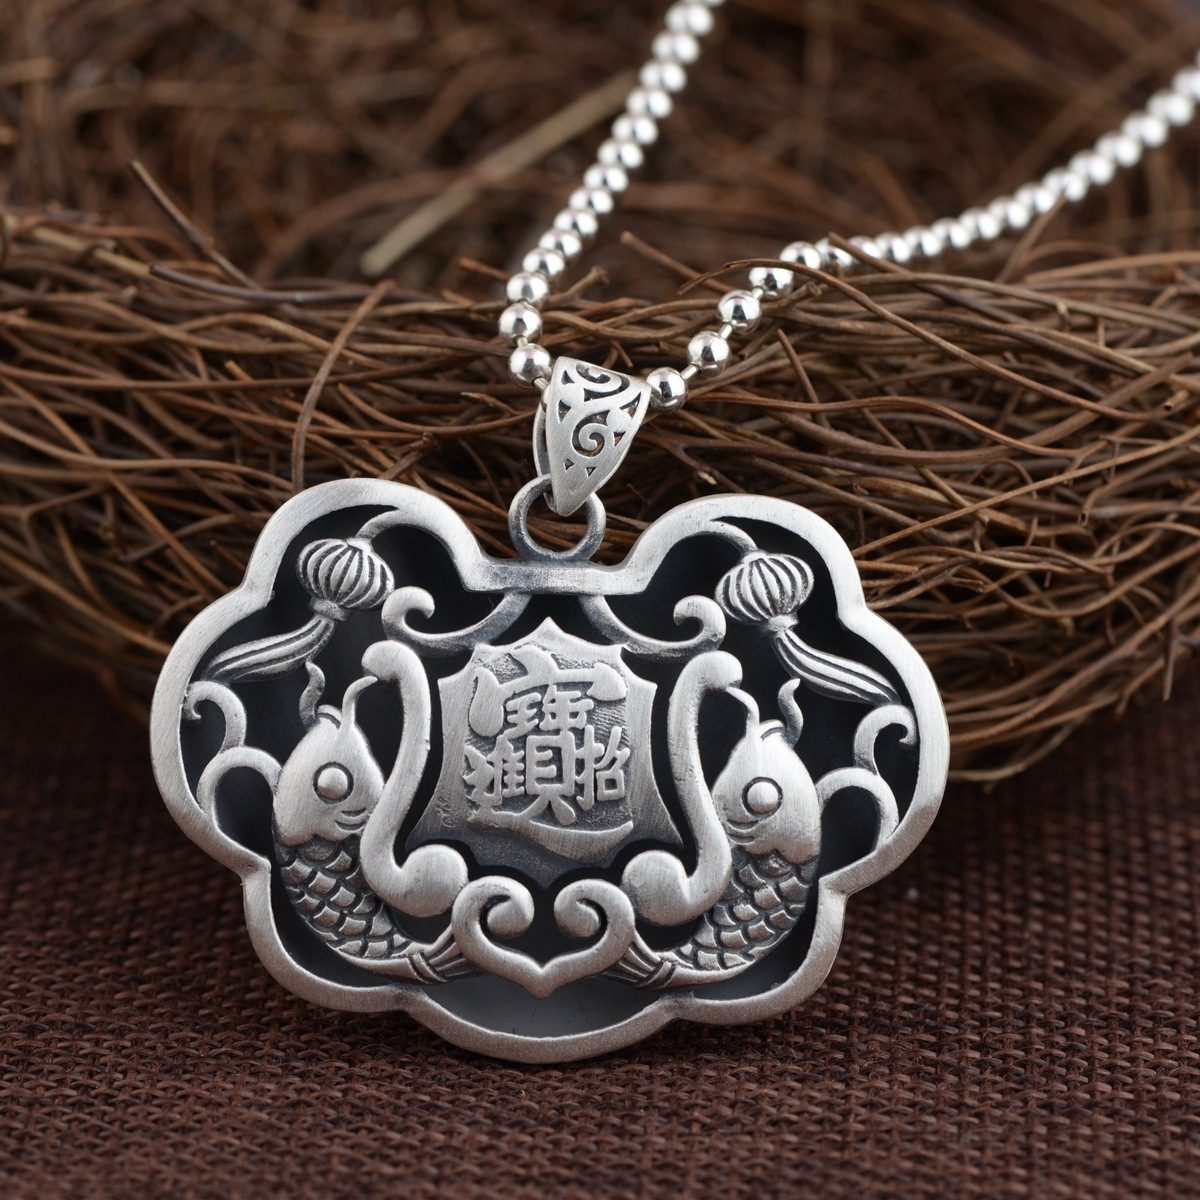 цена 2018 New Necklace Pendant wholesale jewelry Thai silver new pendant prajnaparamita heart sutra archaize style